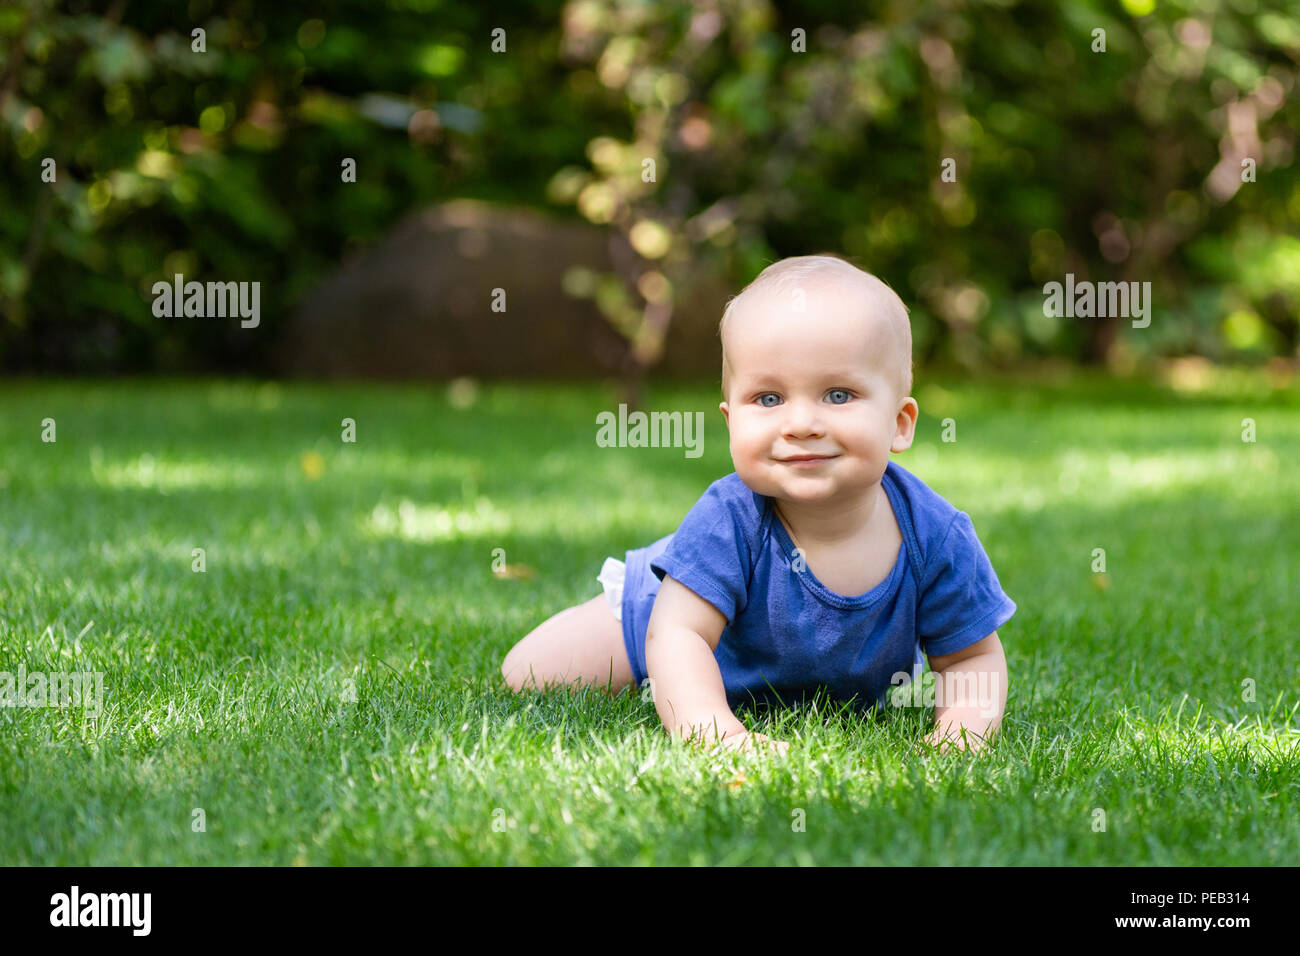 Cute little blond baby boy crawling on fresh green grass. Kid having fun making first steps on mowed natural lawn. Happy and healthy childhood concept - Stock Image